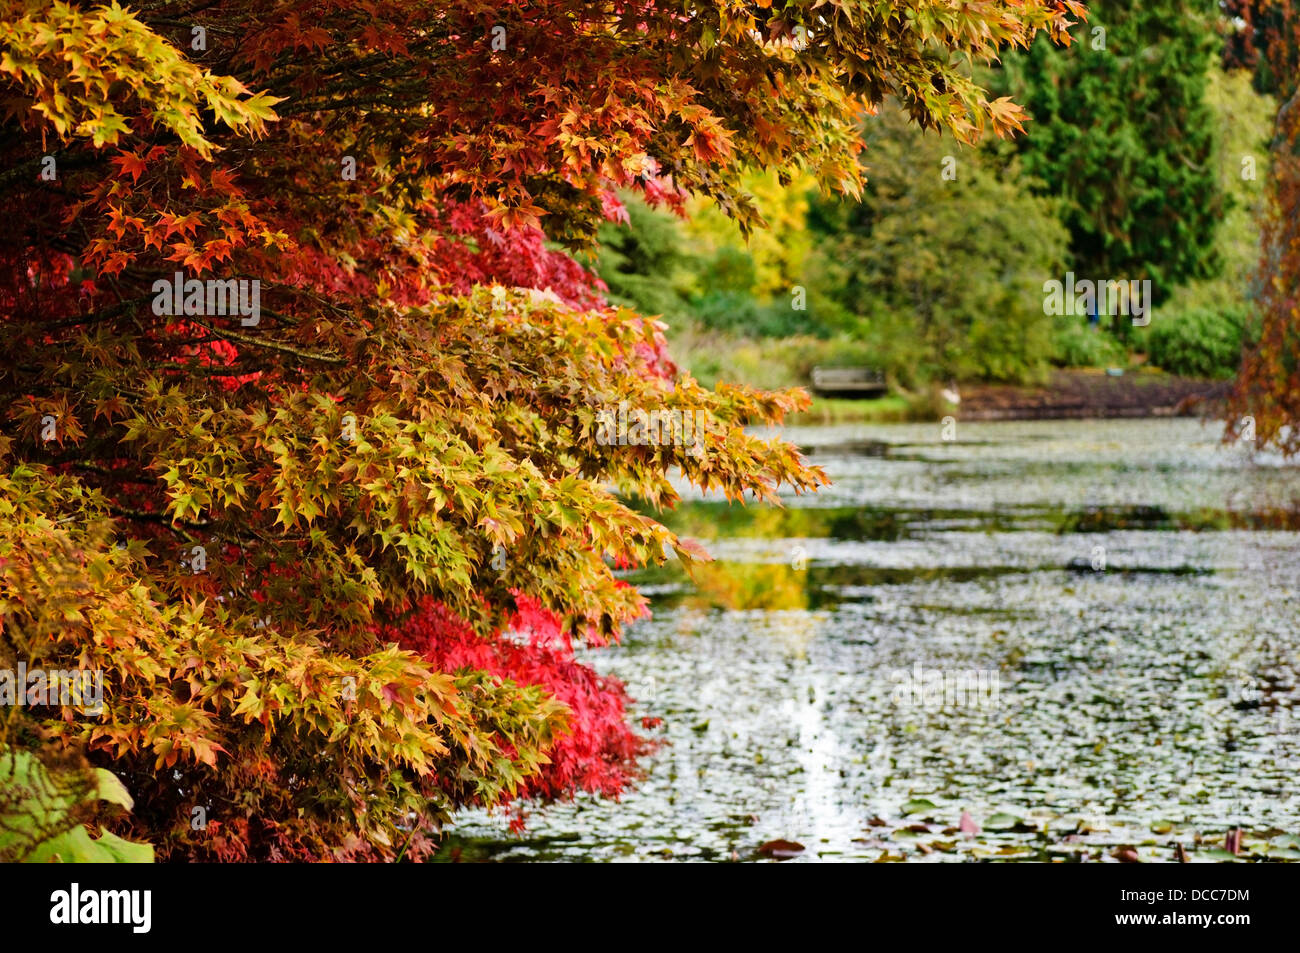 Colourful autumn leaves and trees by a pond in VanDusen Botanical gardens in Vancouver. Autumn garden. - Stock Image